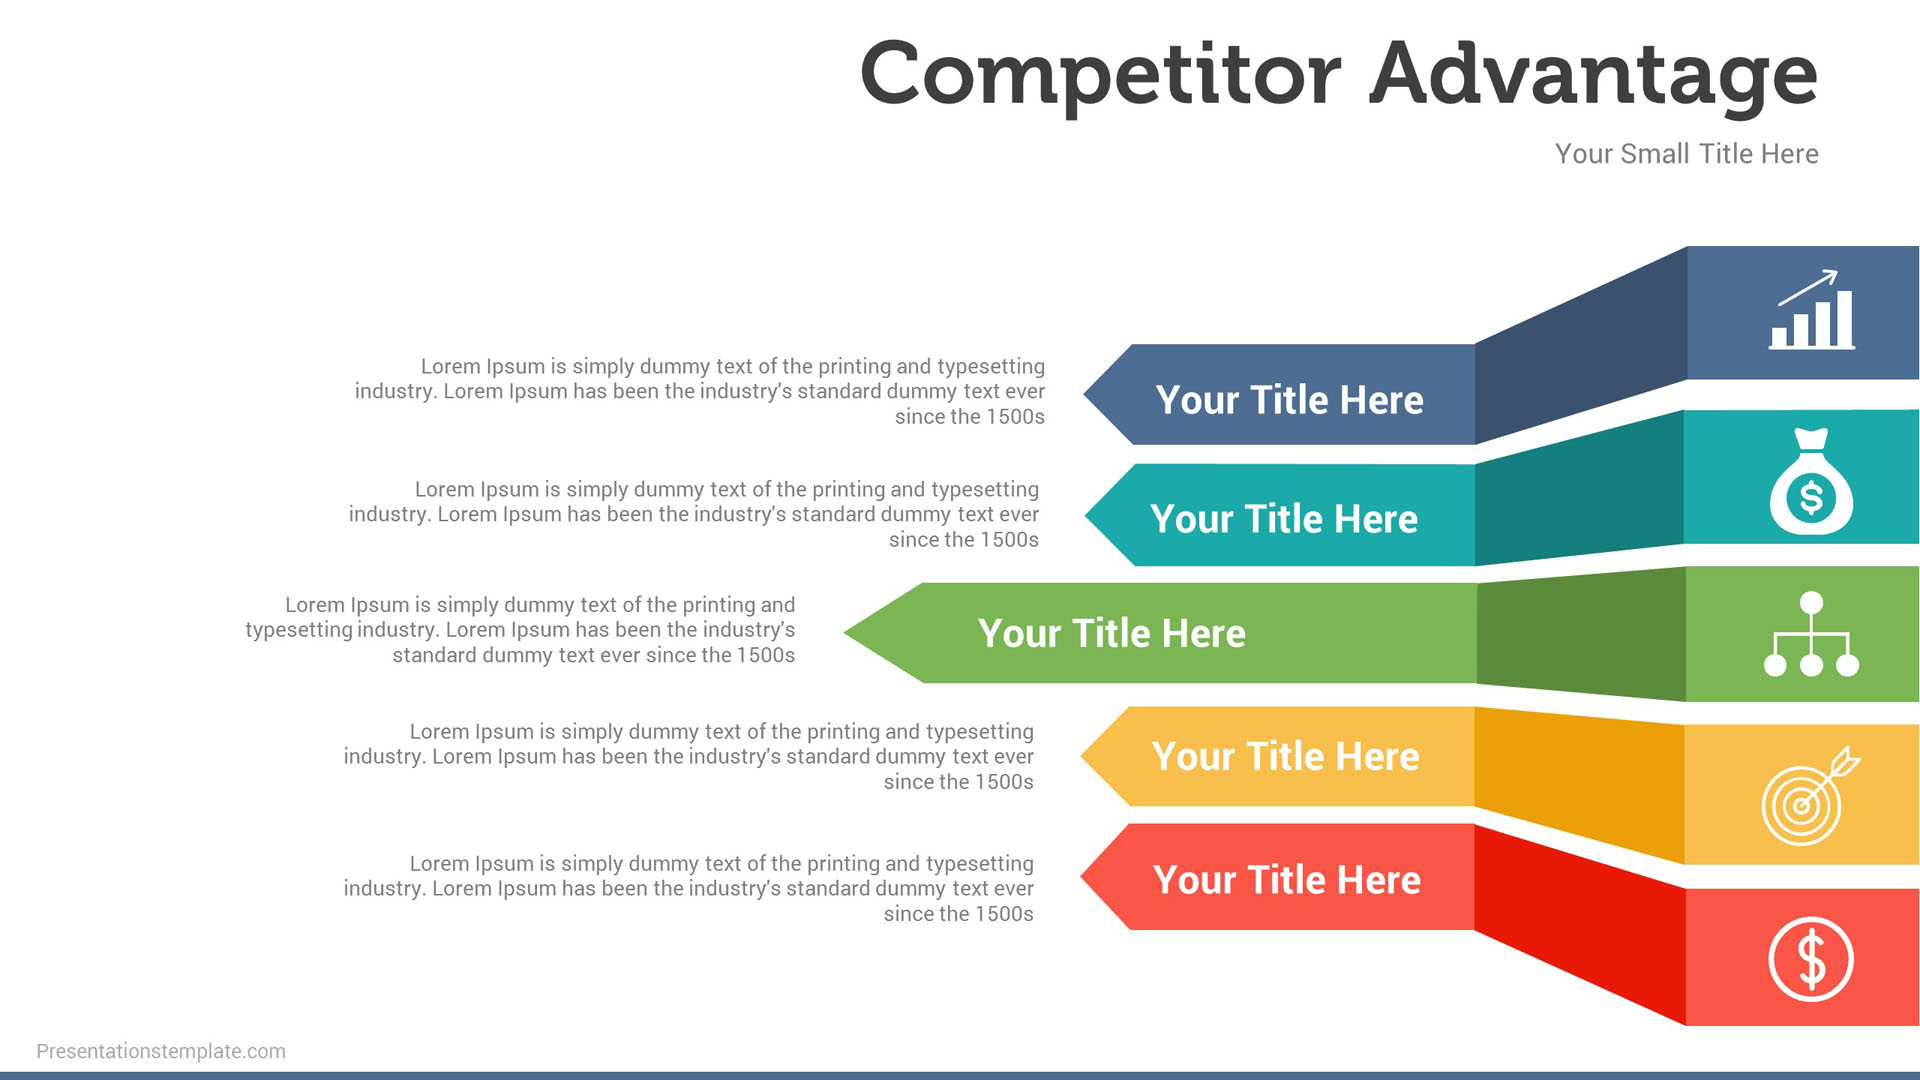 competitive advantages presentations template